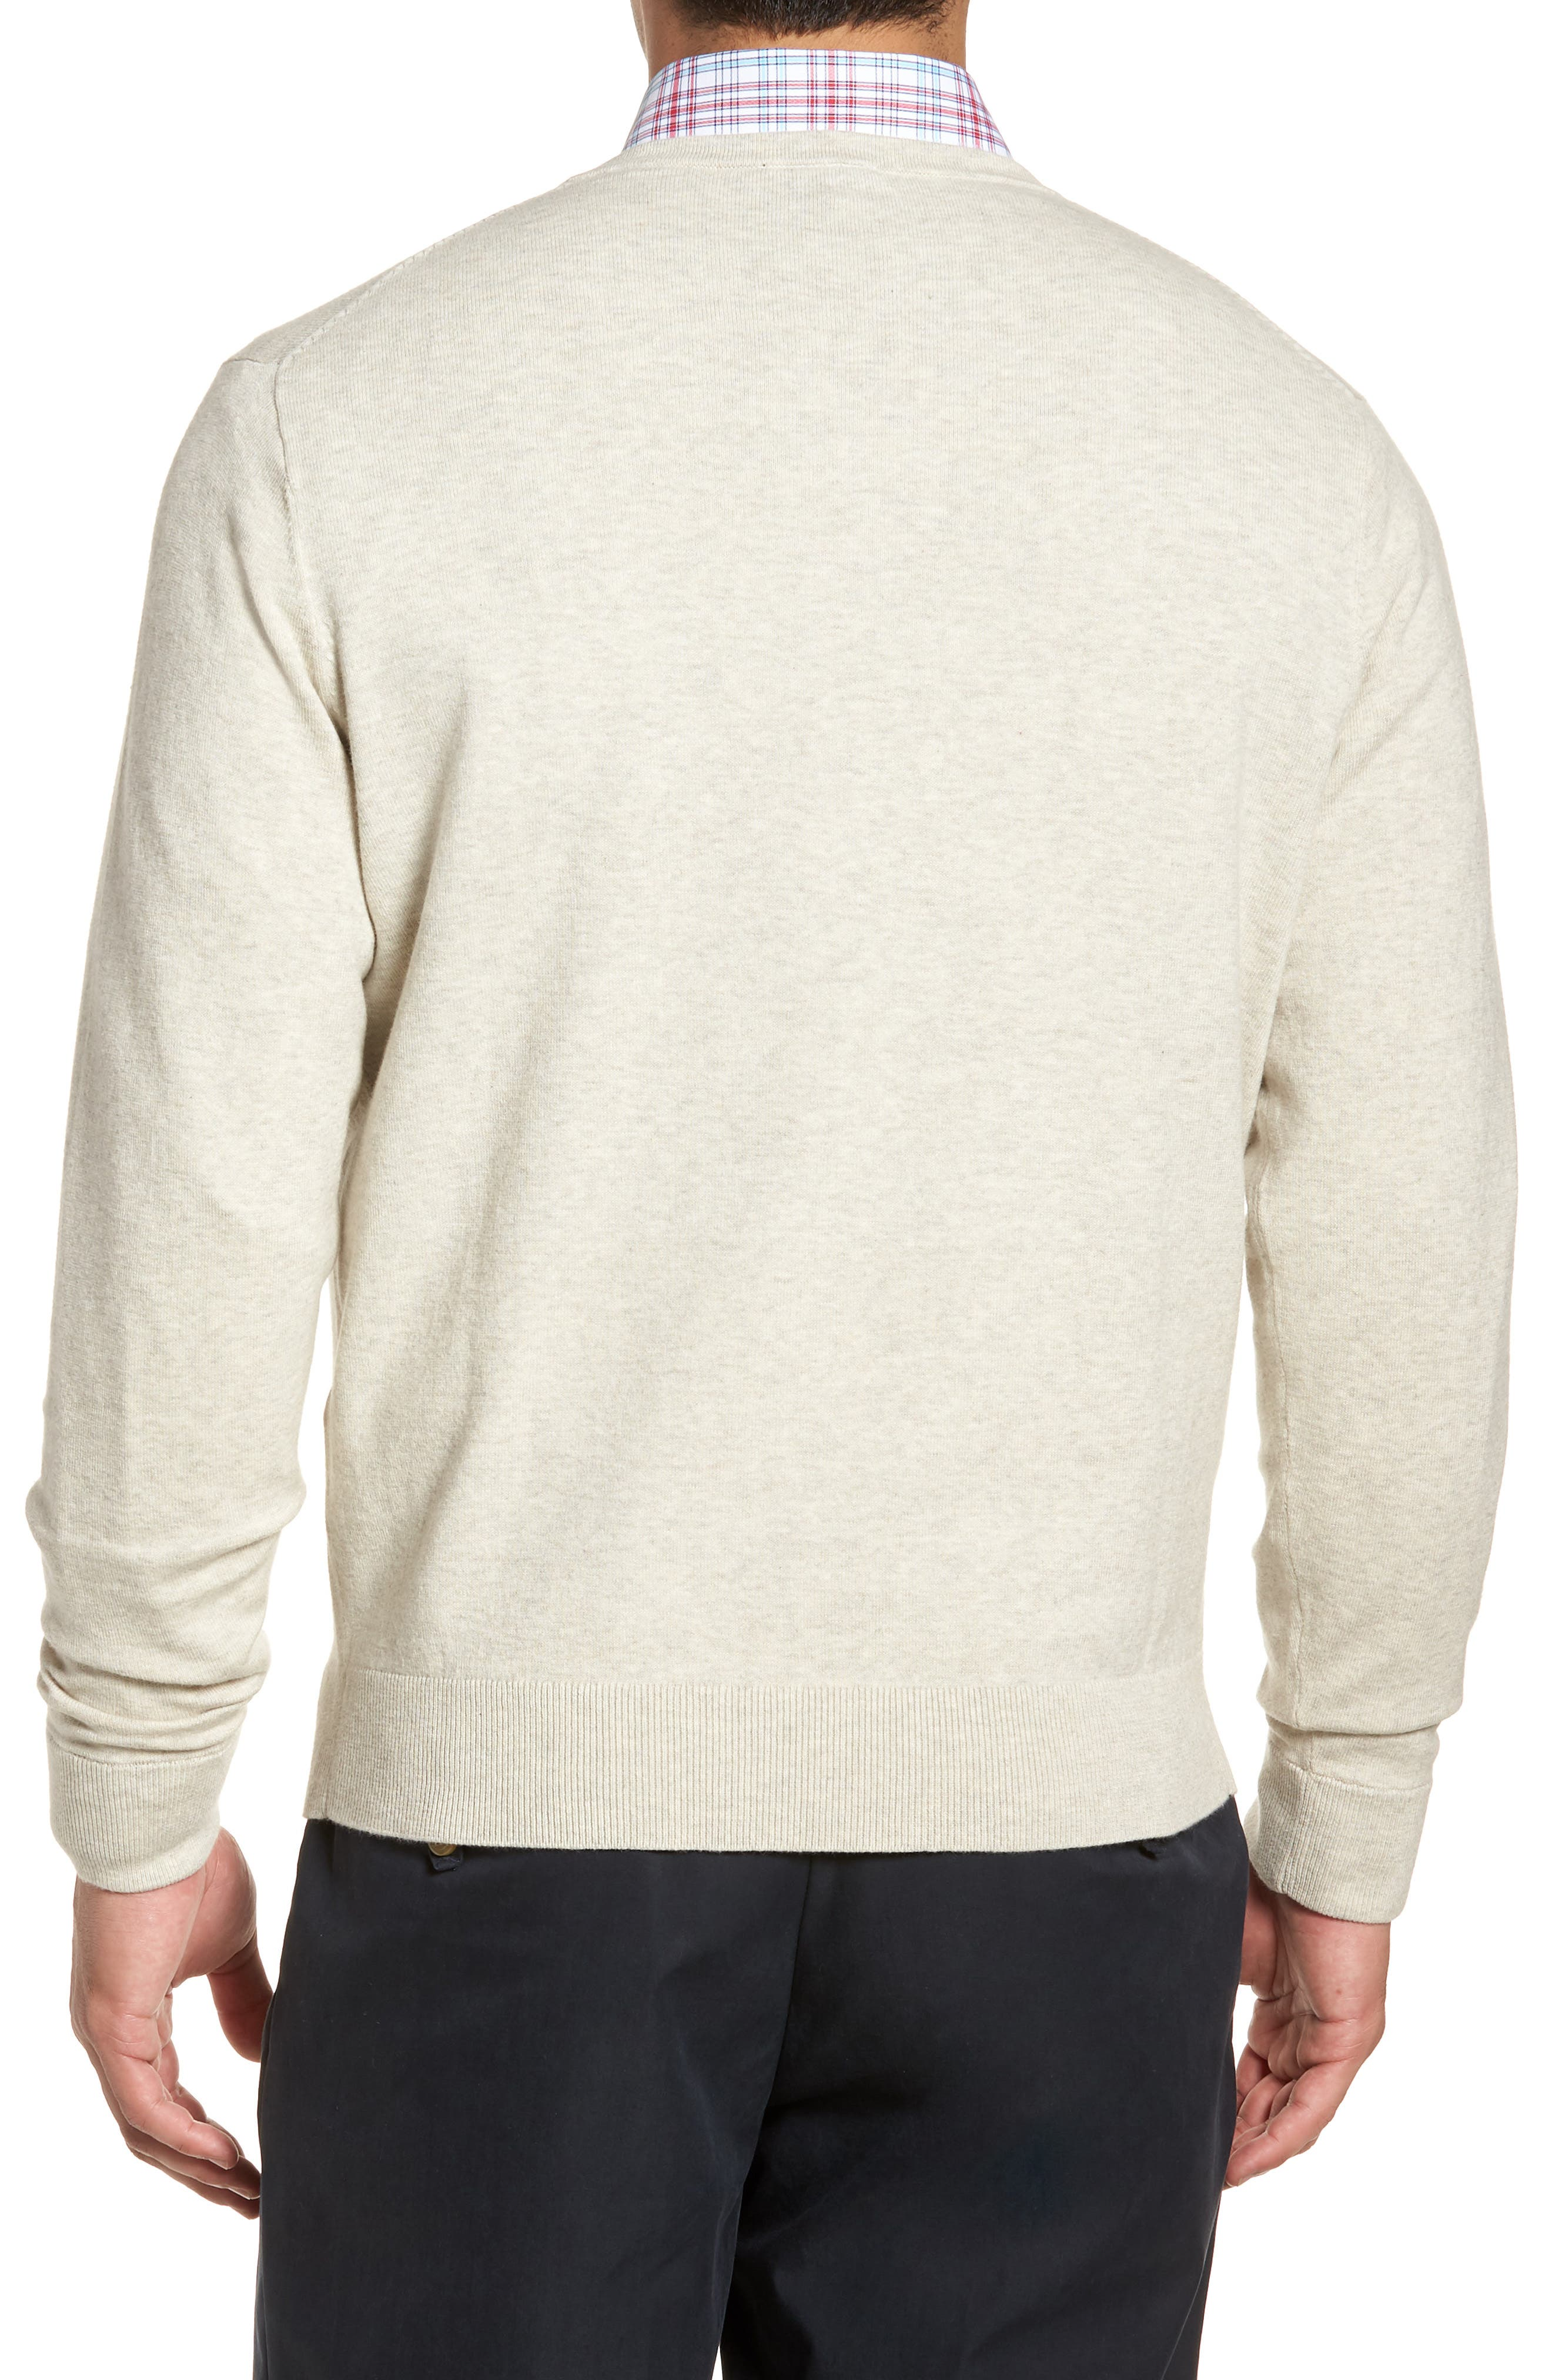 CUTTER & BUCK, Lakemont Classic Fit V-Neck Sweater, Alternate thumbnail 2, color, OATMEAL HEATHER